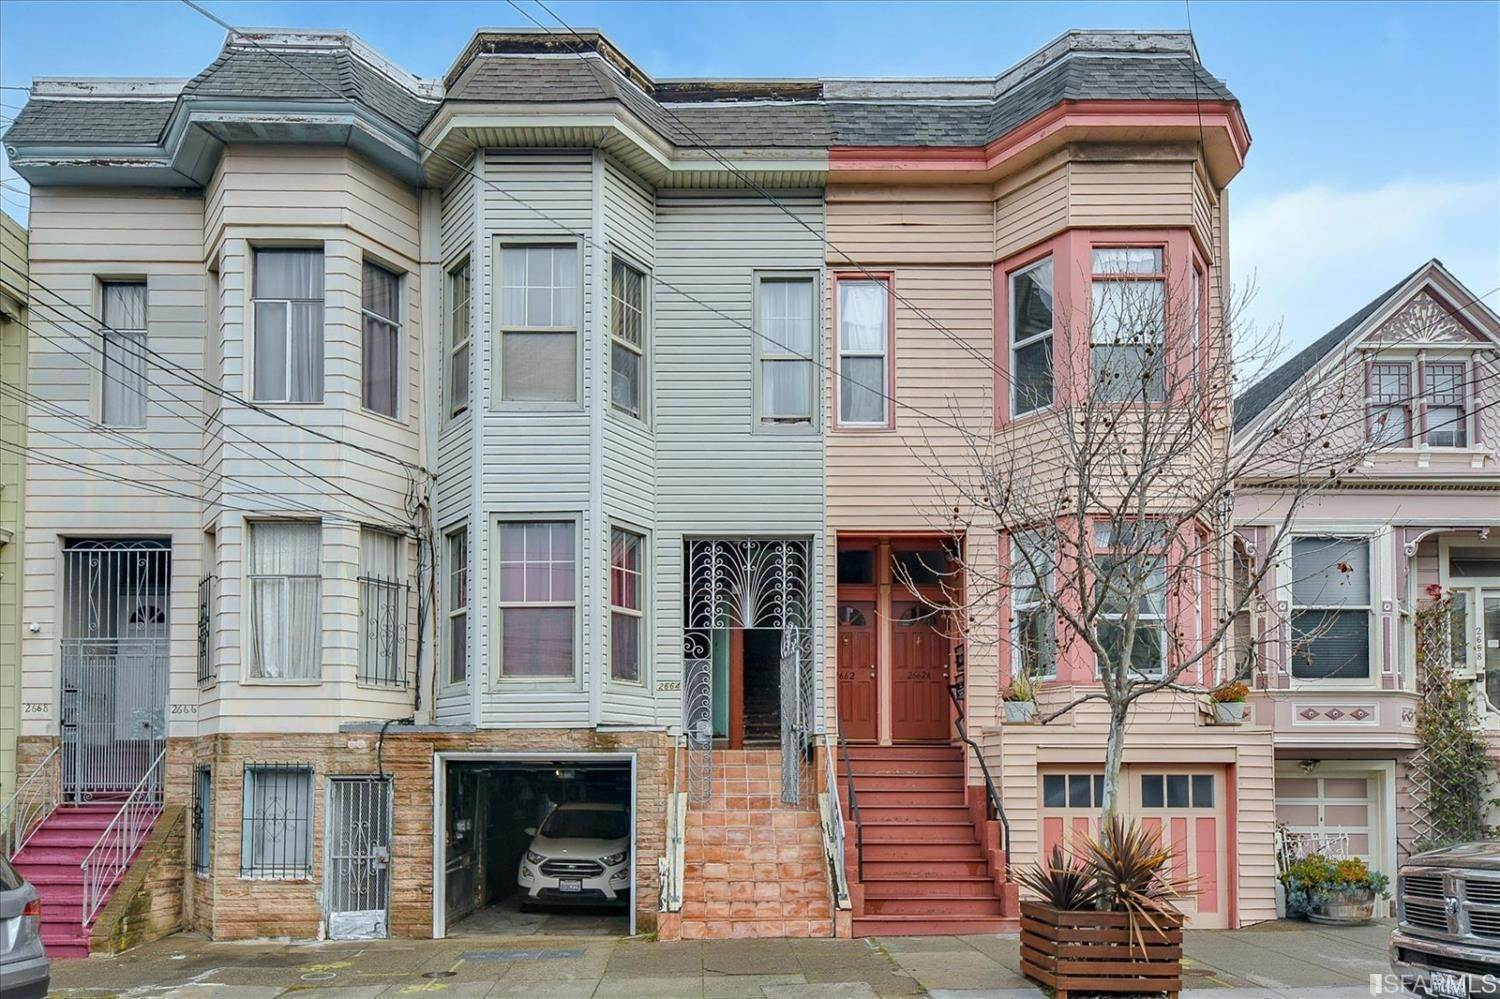 Duplex Homes for Sale at 2664 22nd Street San Francisco, California 94110 United States